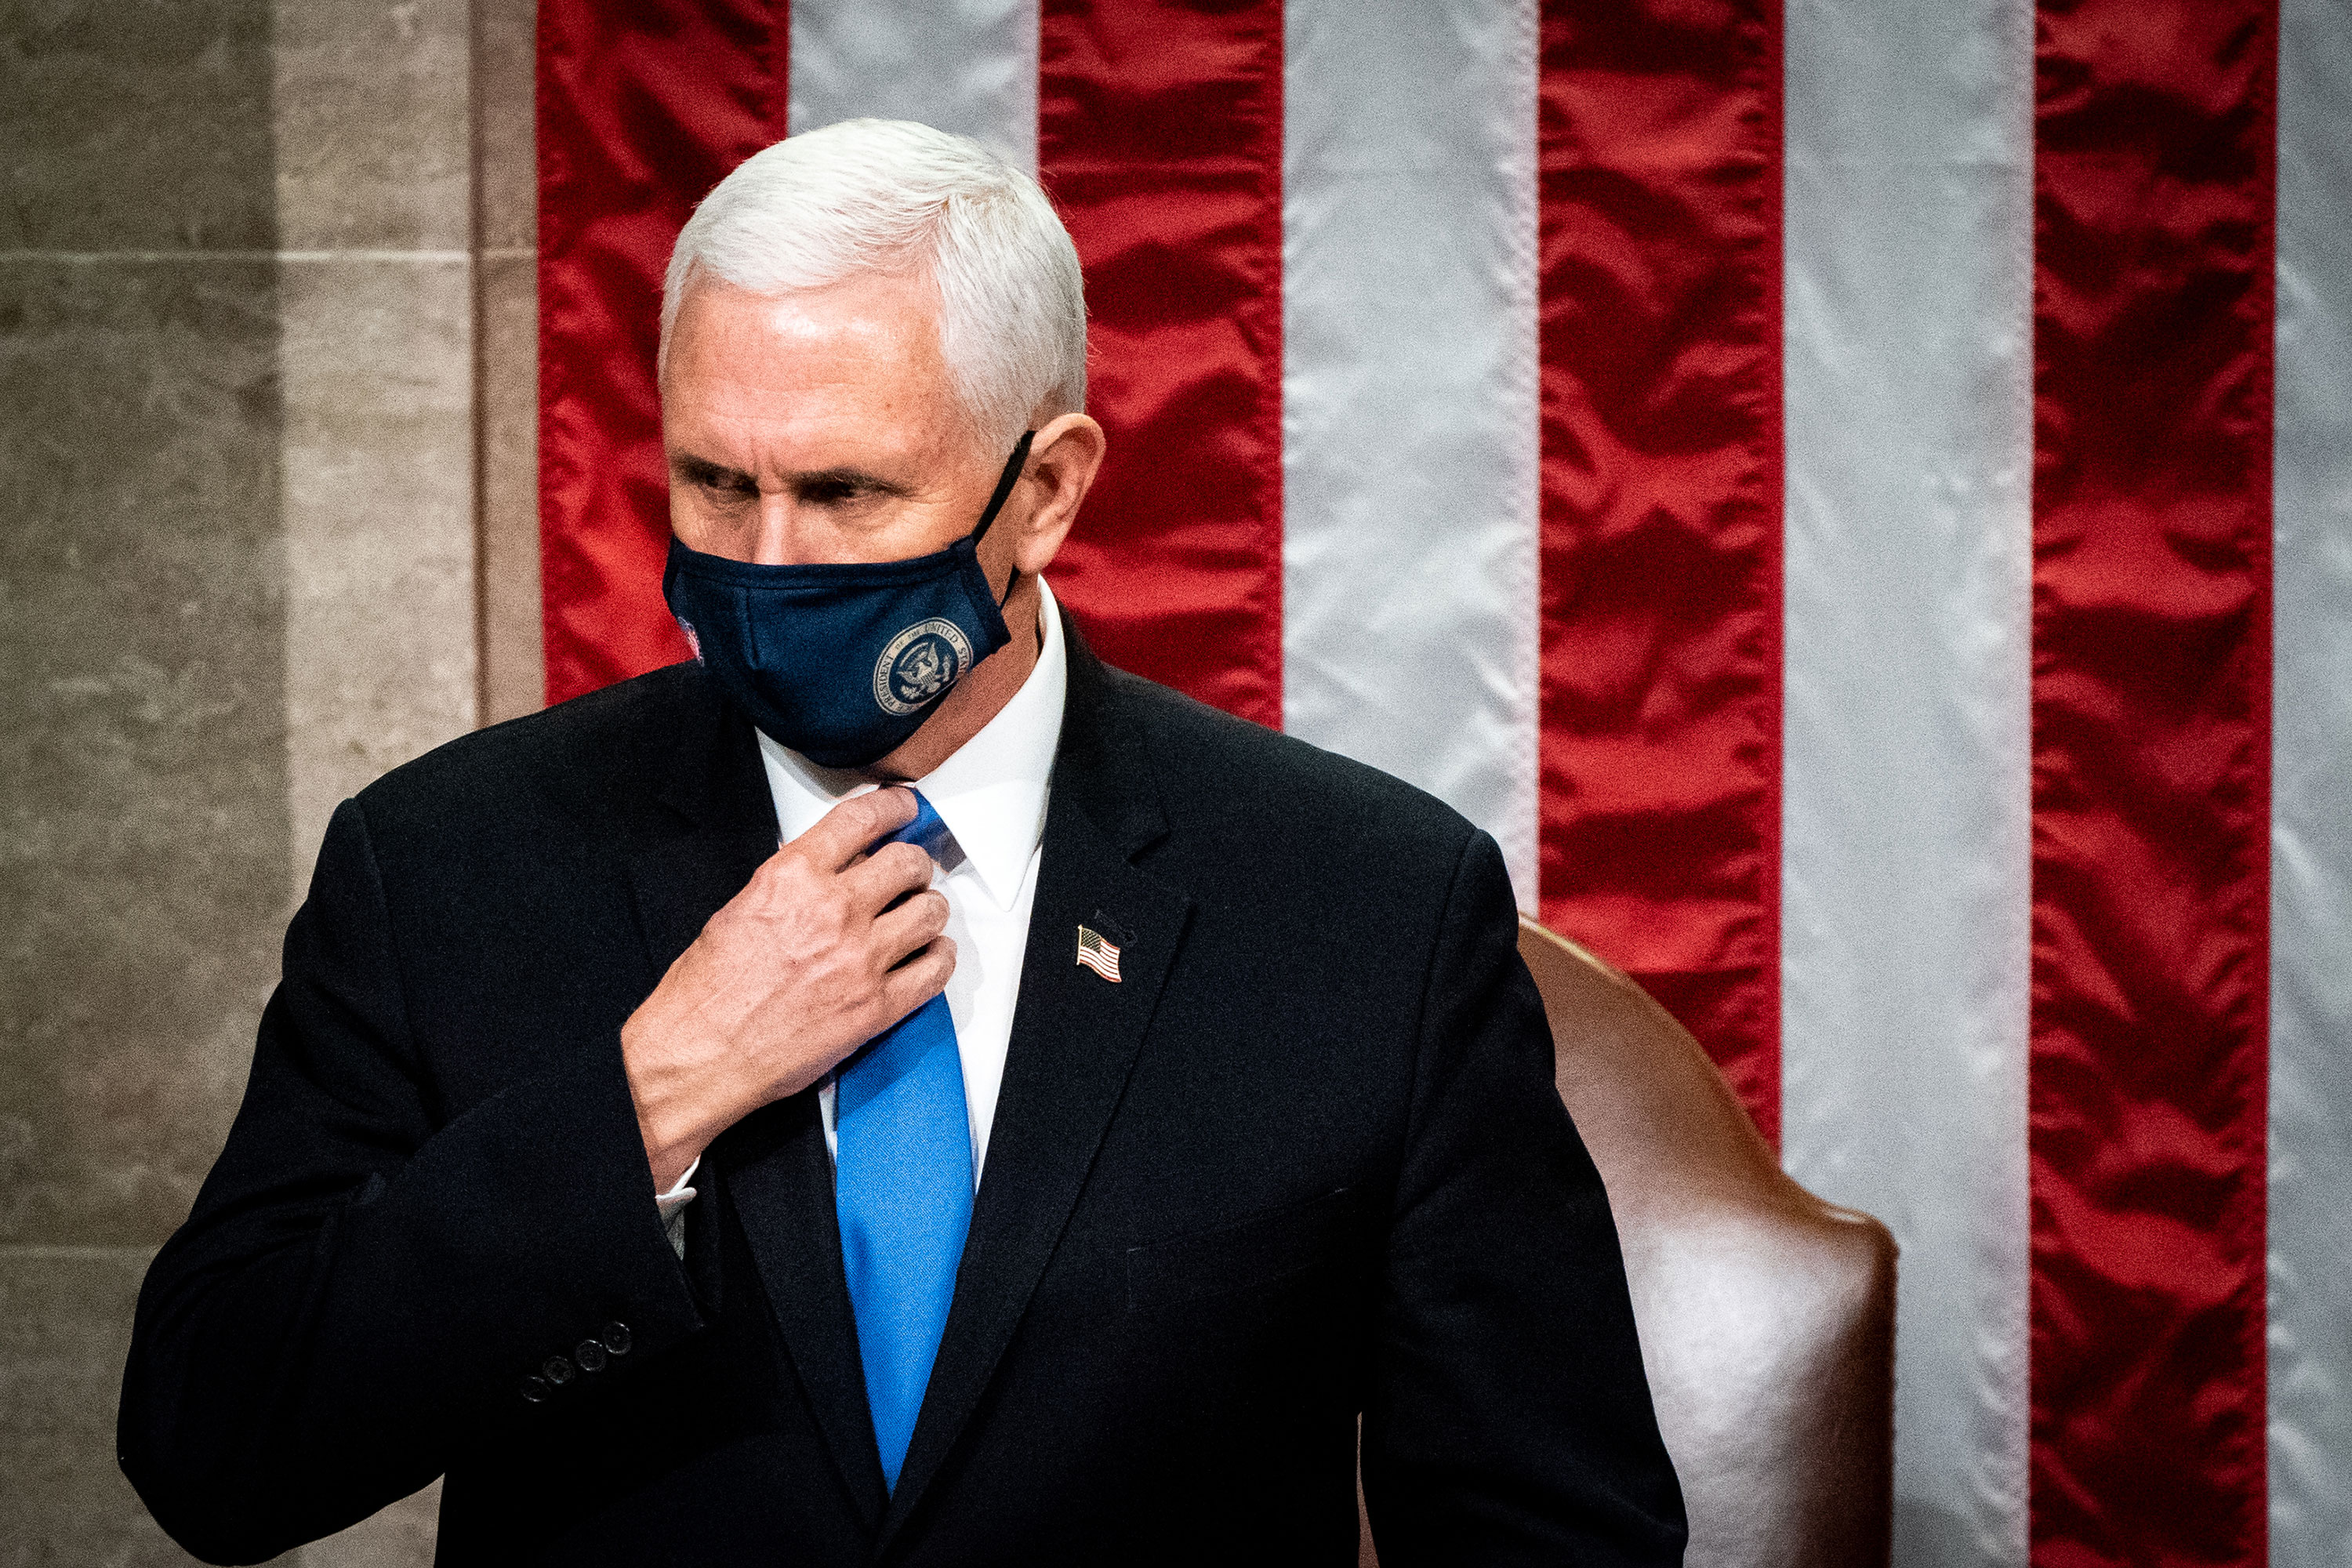 Vice President Mike Pence is seen presiding over the joint session of Congress on January 6.